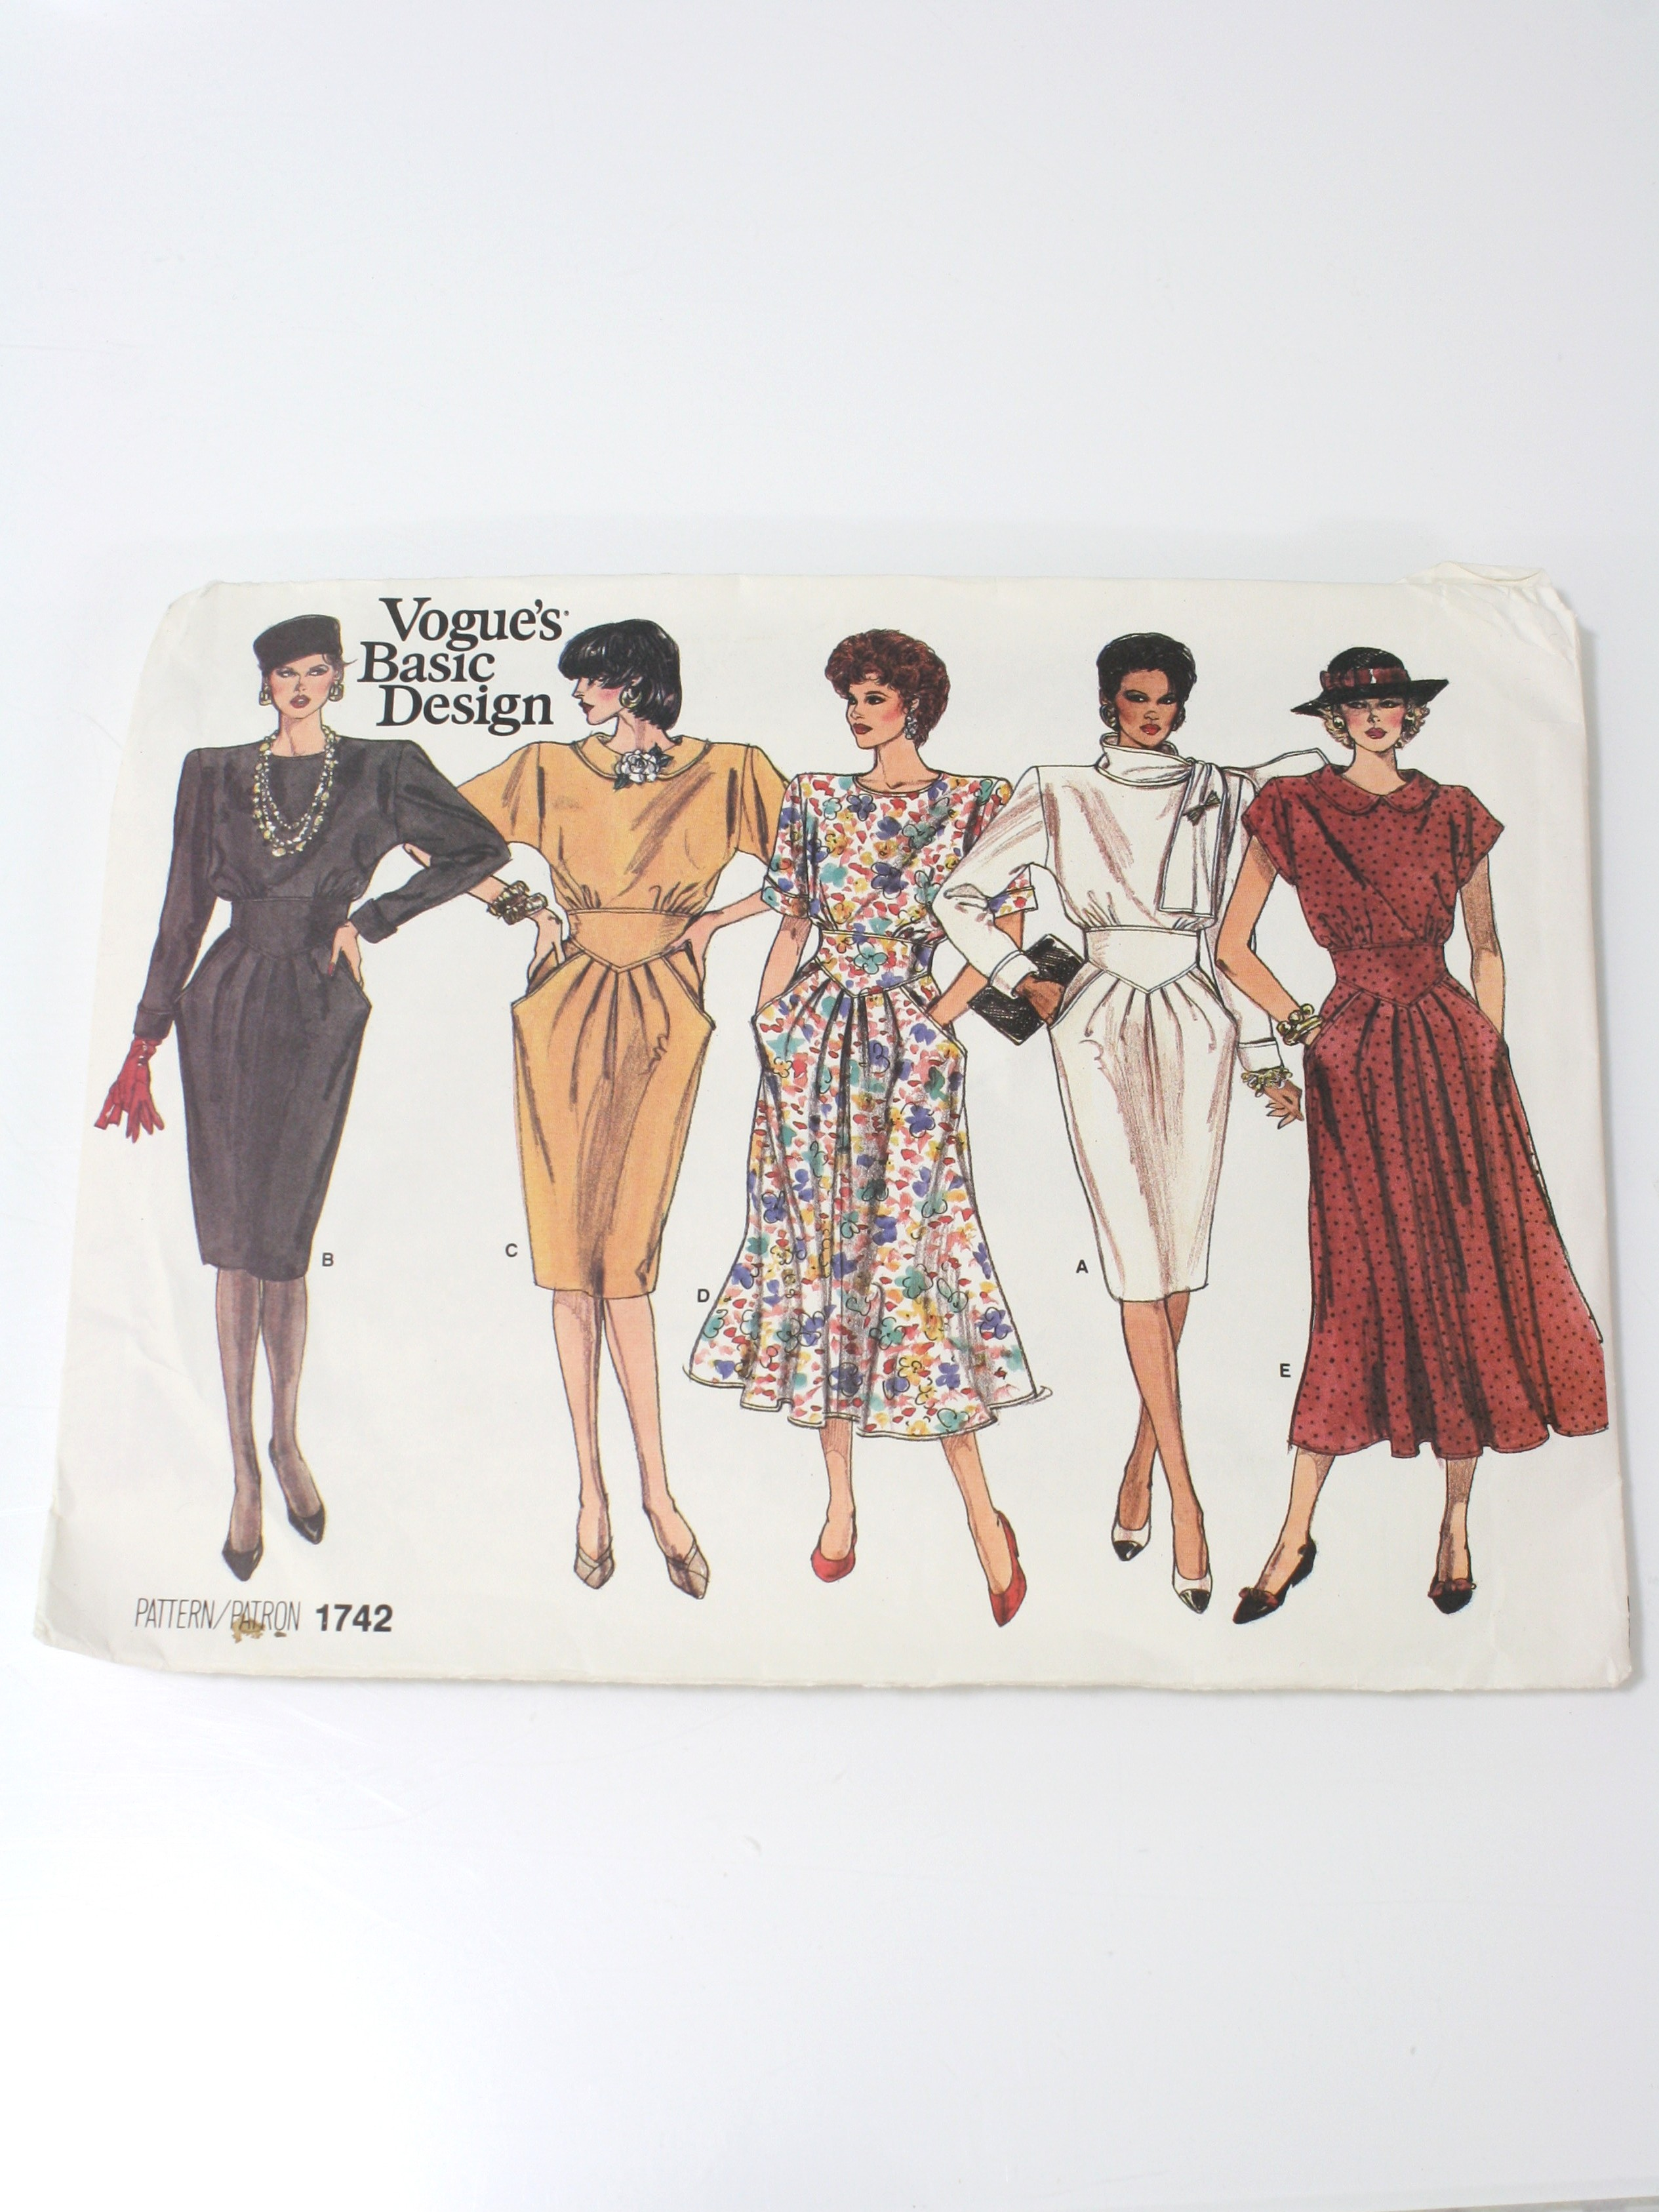 Vintage 70s Sewing Pattern 70s Vogue Basic Design Pattern No 1742 Womens Dress Has Skirt With Pockets Gathered Into Fitted Bodice Neckline And Sleeve Variations With Back Zipper Closing Pattern Is Uncut